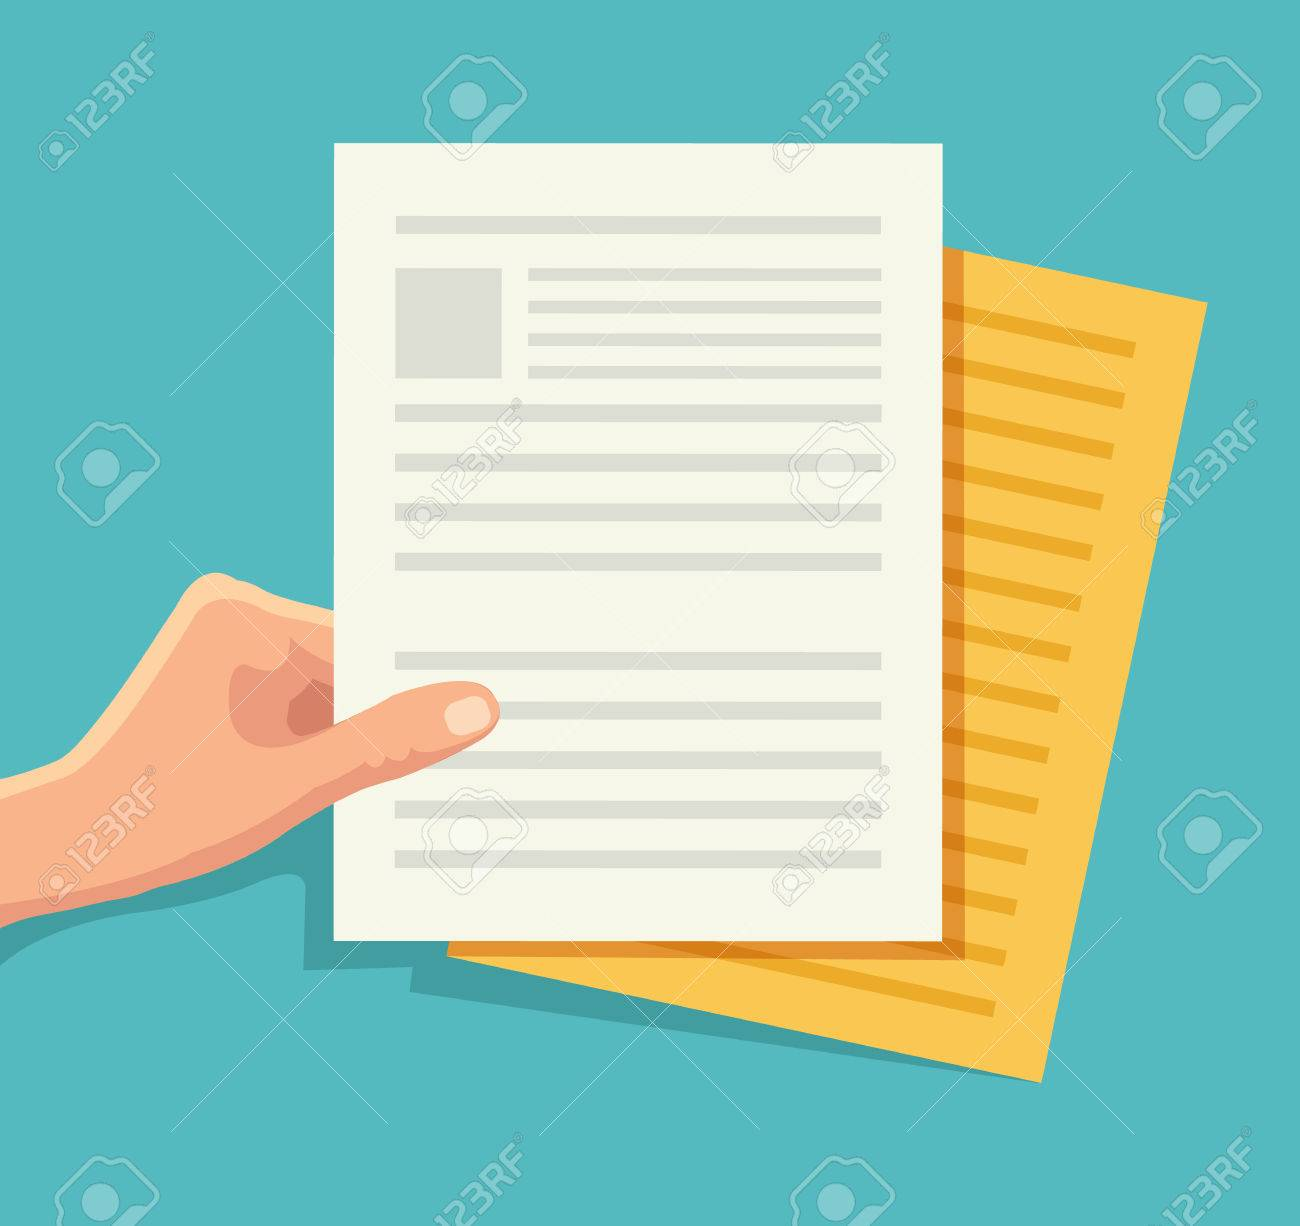 Hand holding the document. Vector flat illustration - 48675582